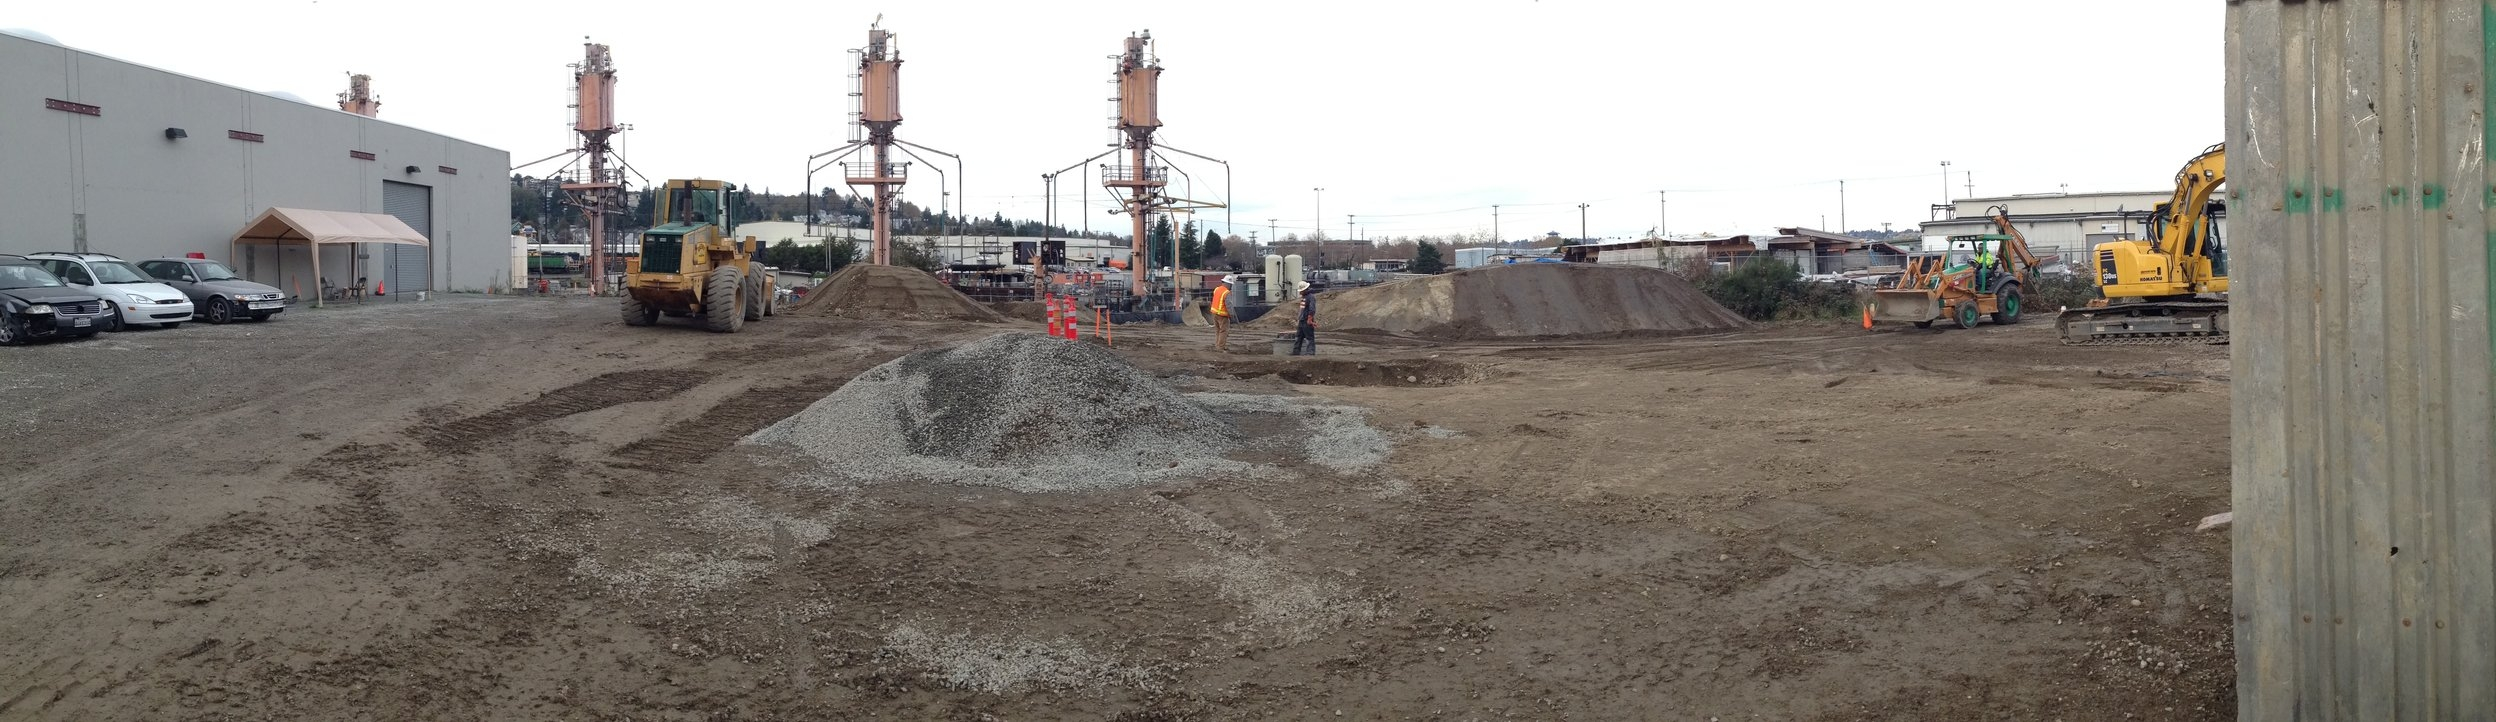 The R&D building site during site remediation and civil work.